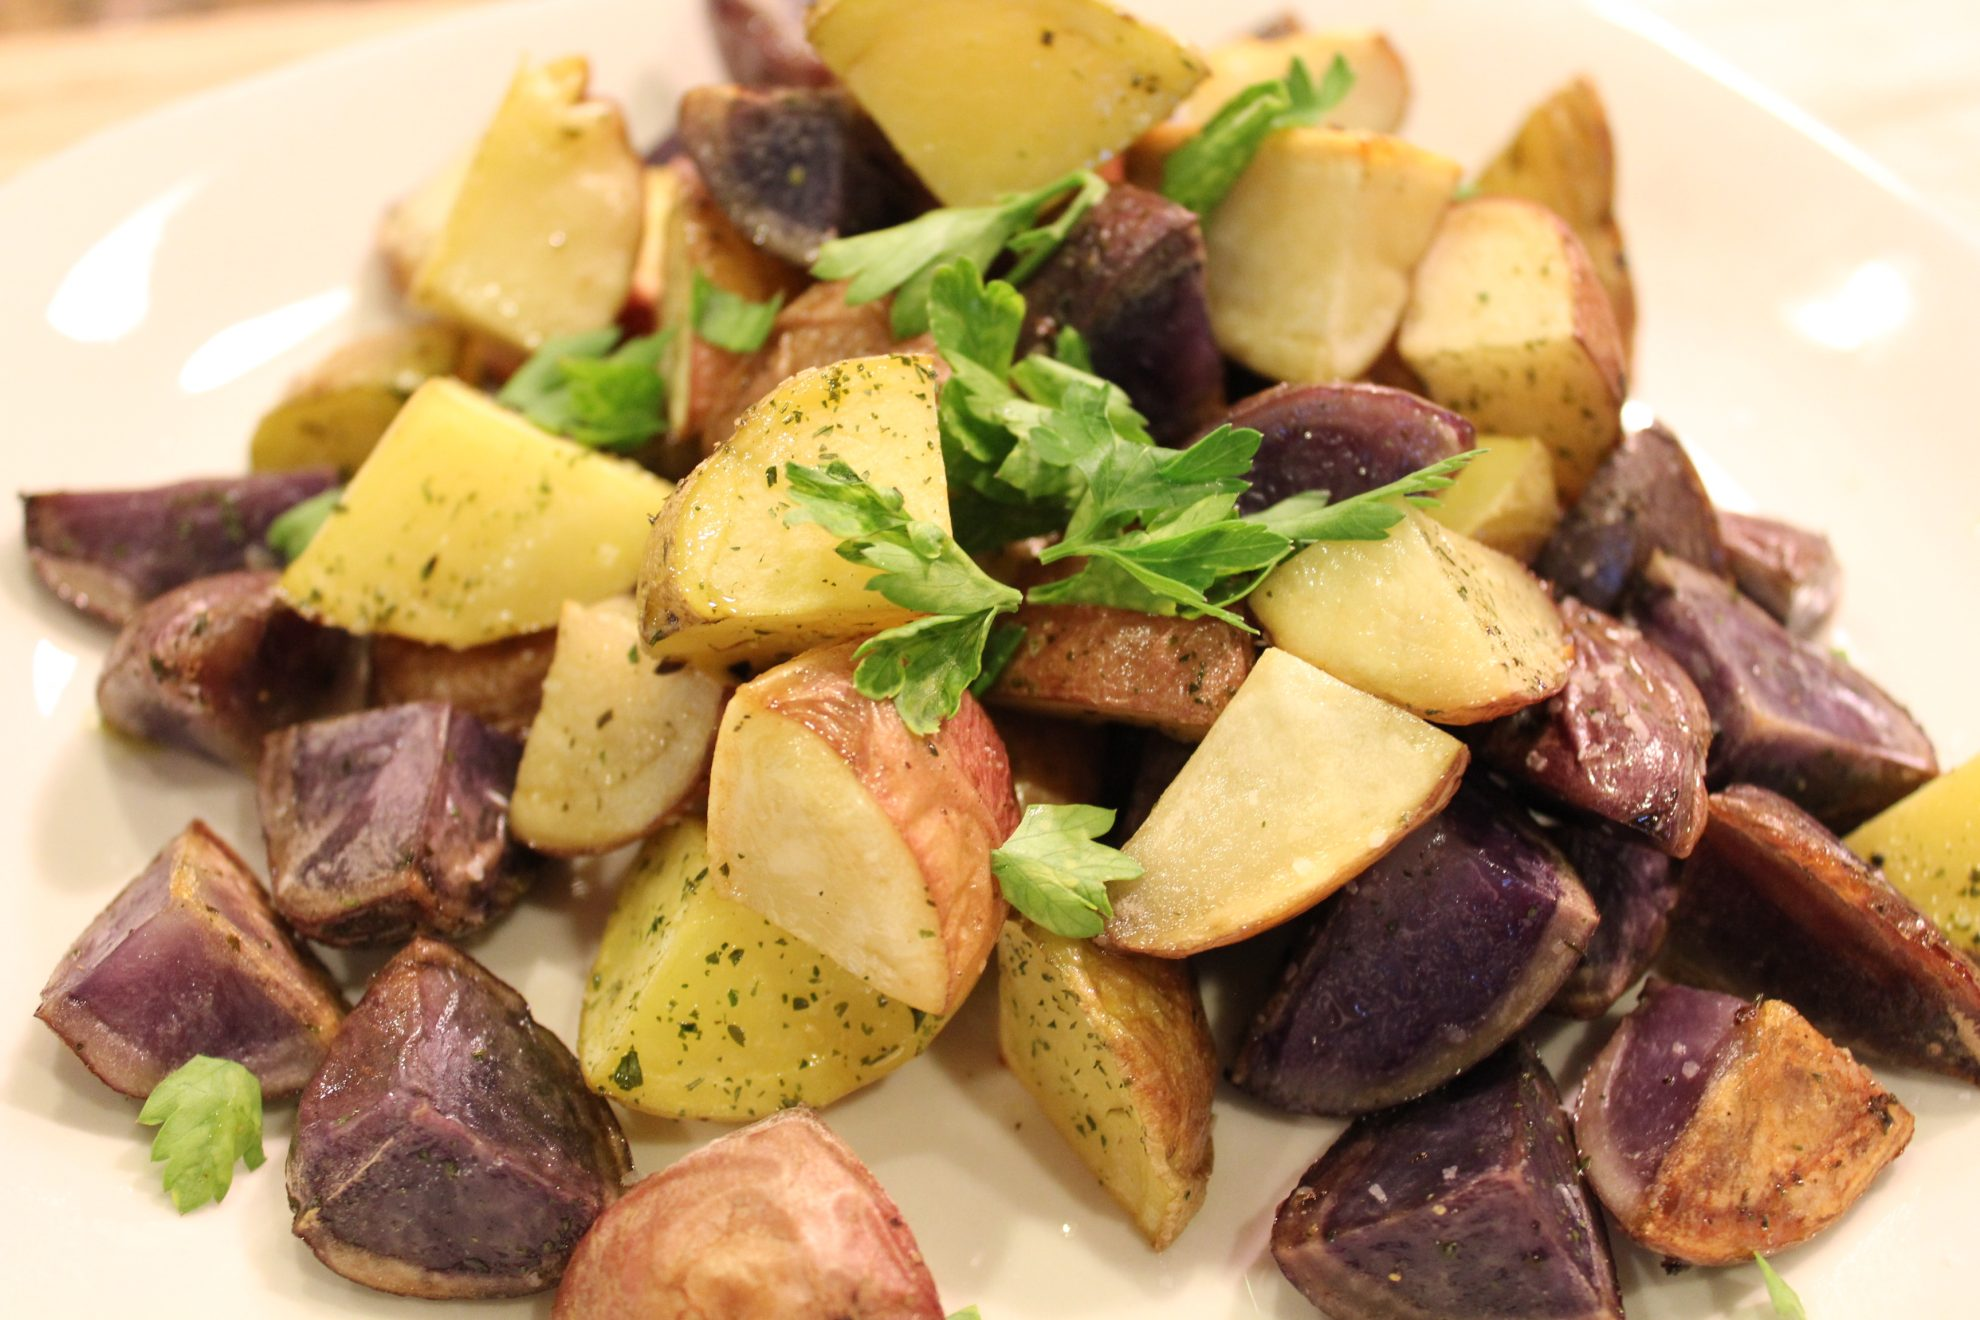 Roasted potatoes. Love the purple ones! So pretty!